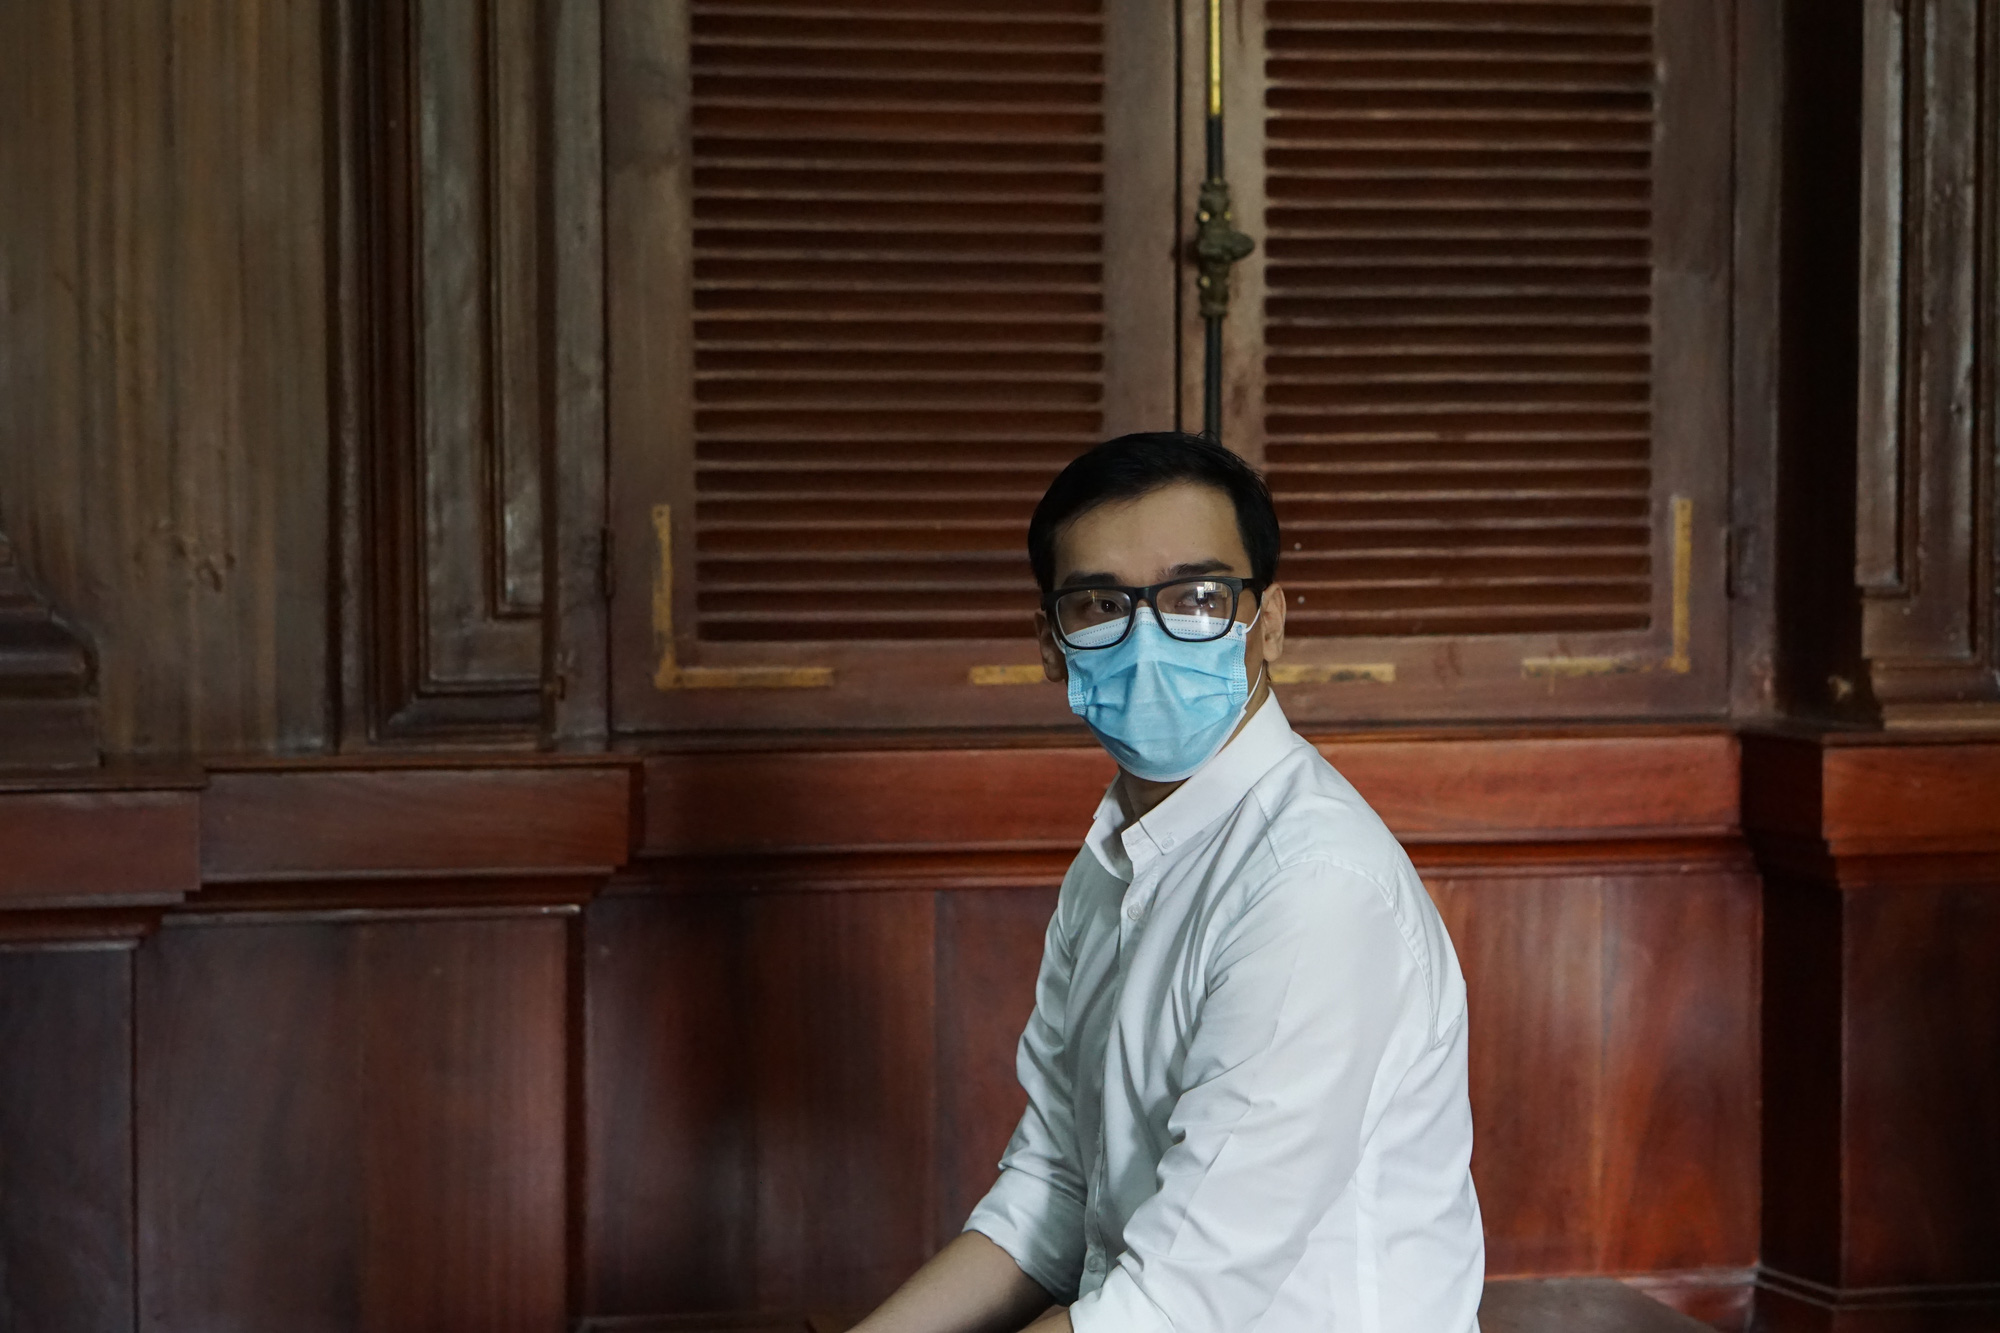 Duong Tan Hau during his trial at the Ho Chi Minh City People's Court on March 30, 2021. Photo: Ngoc Phuong / Tuoi Tre